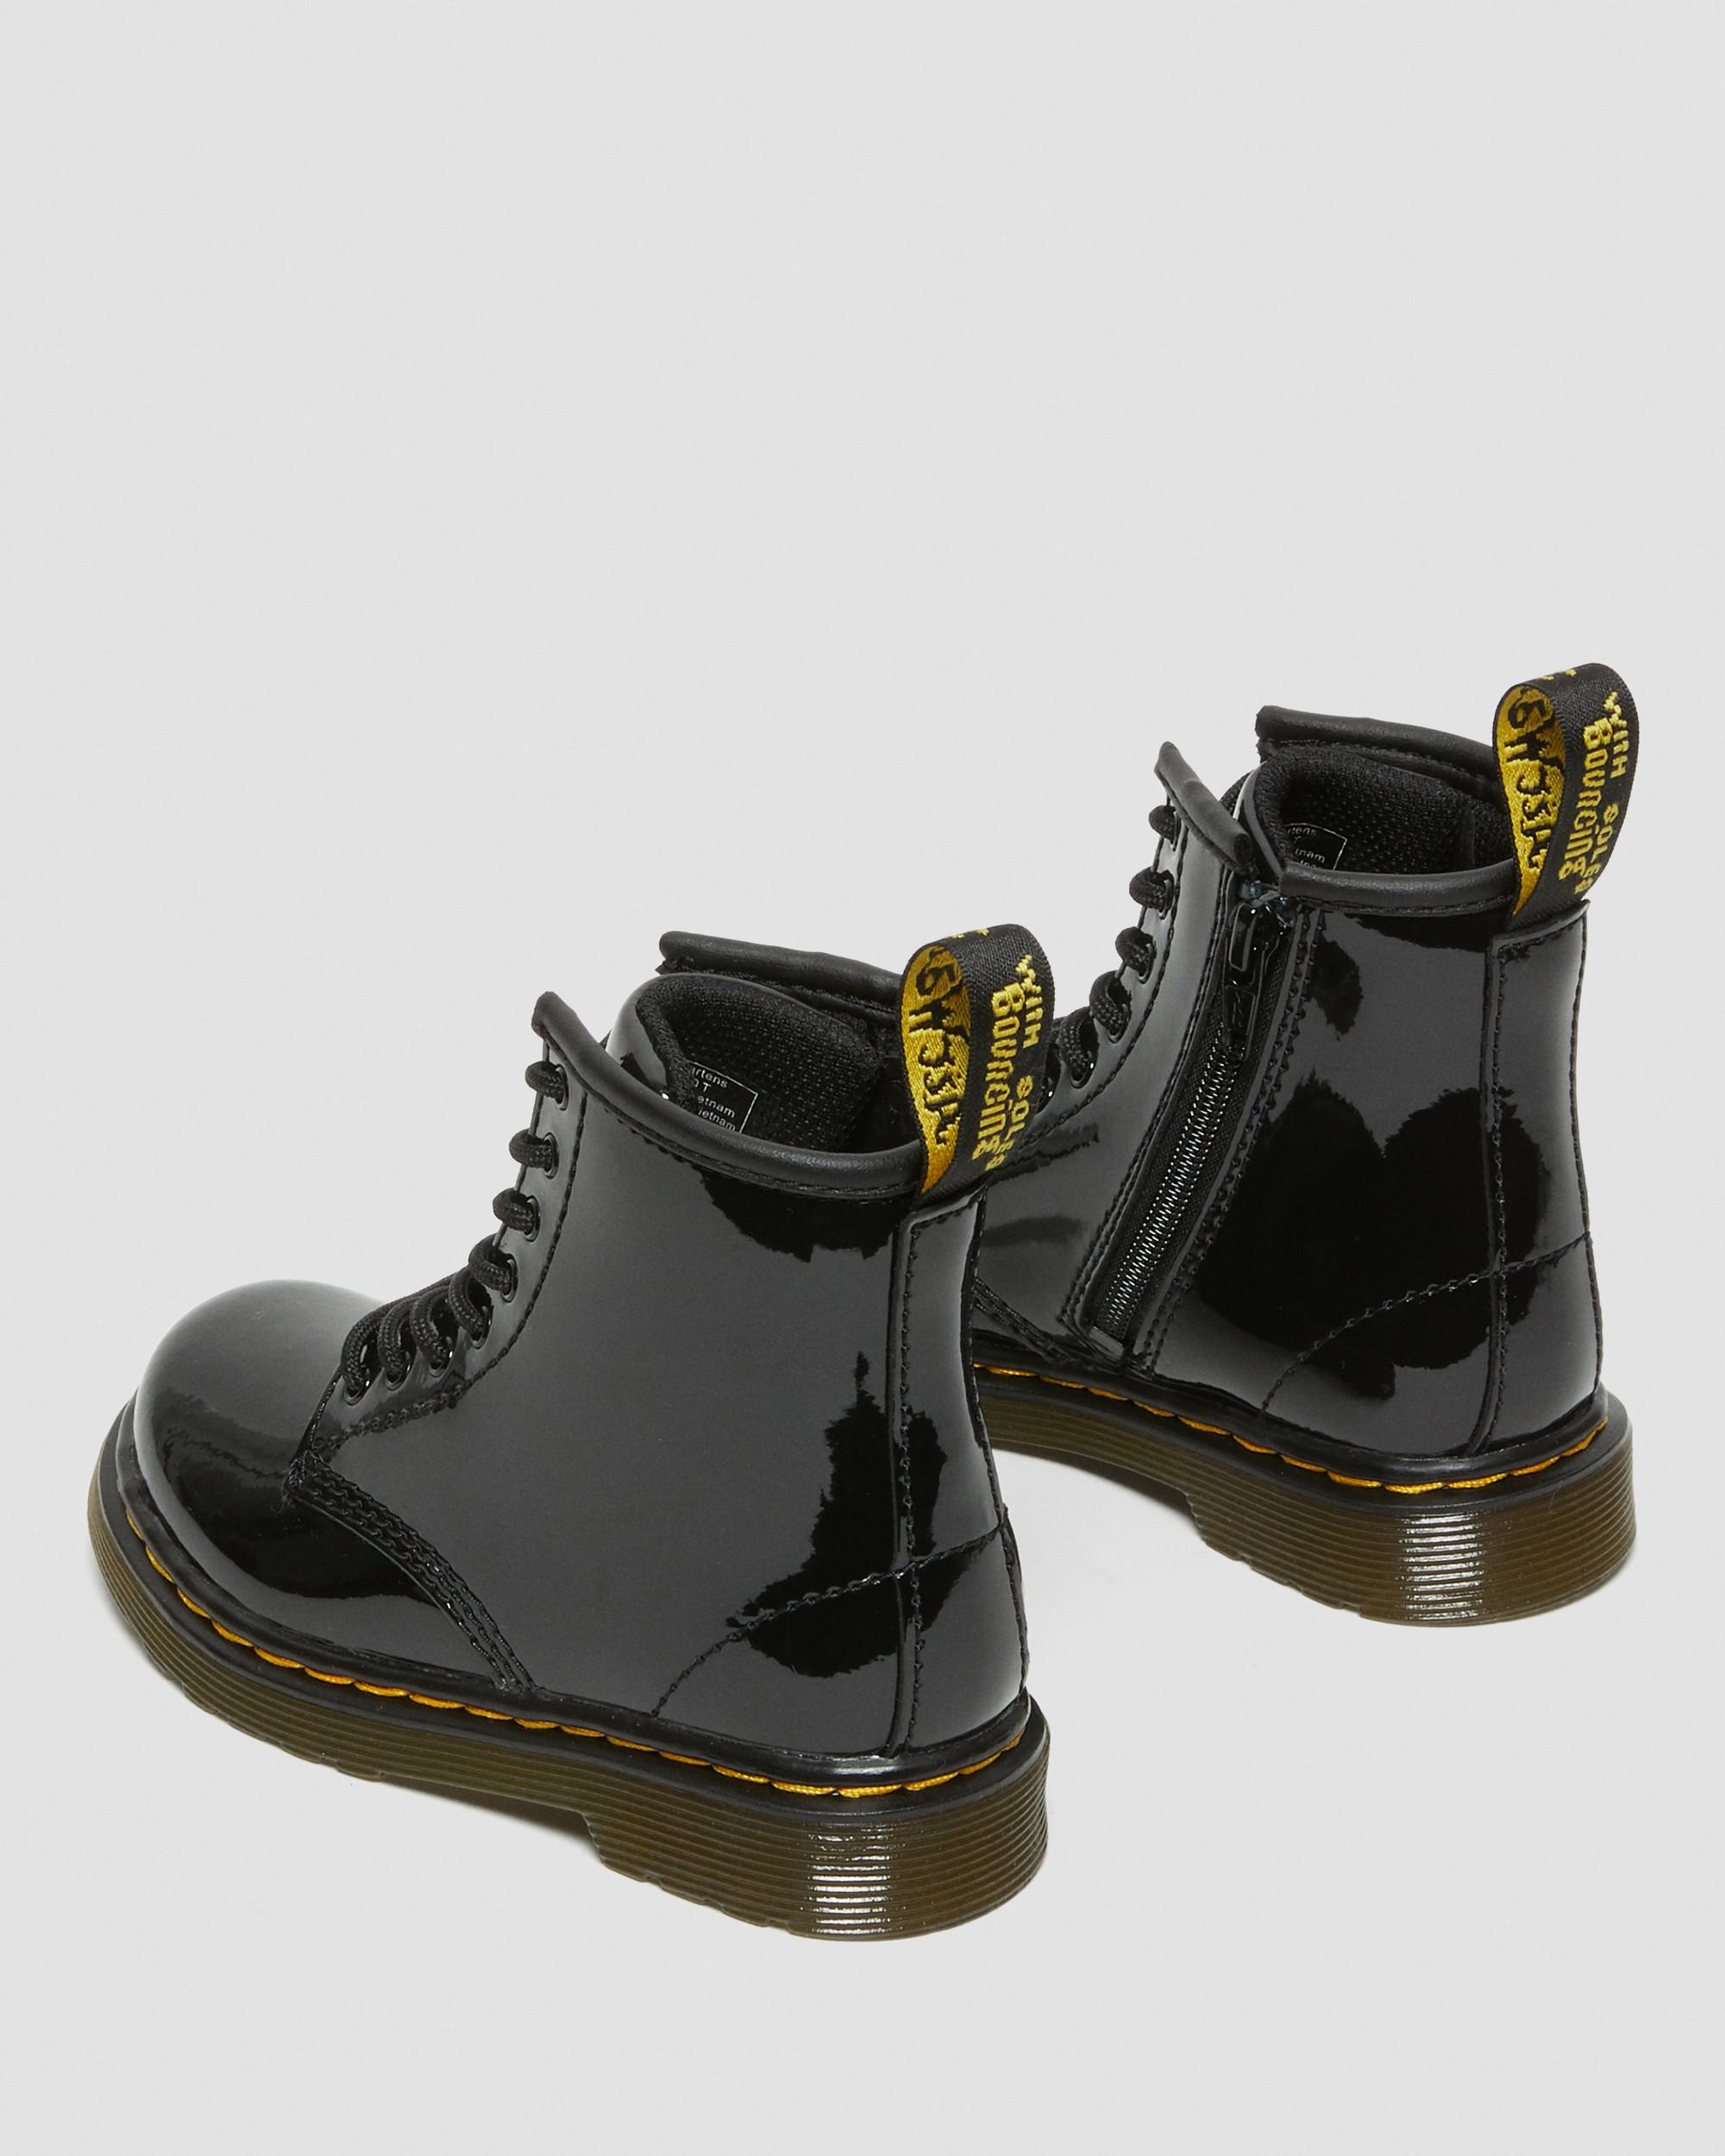 TODDLER 1460 PATENT LEATHER ANKLE BOOTS